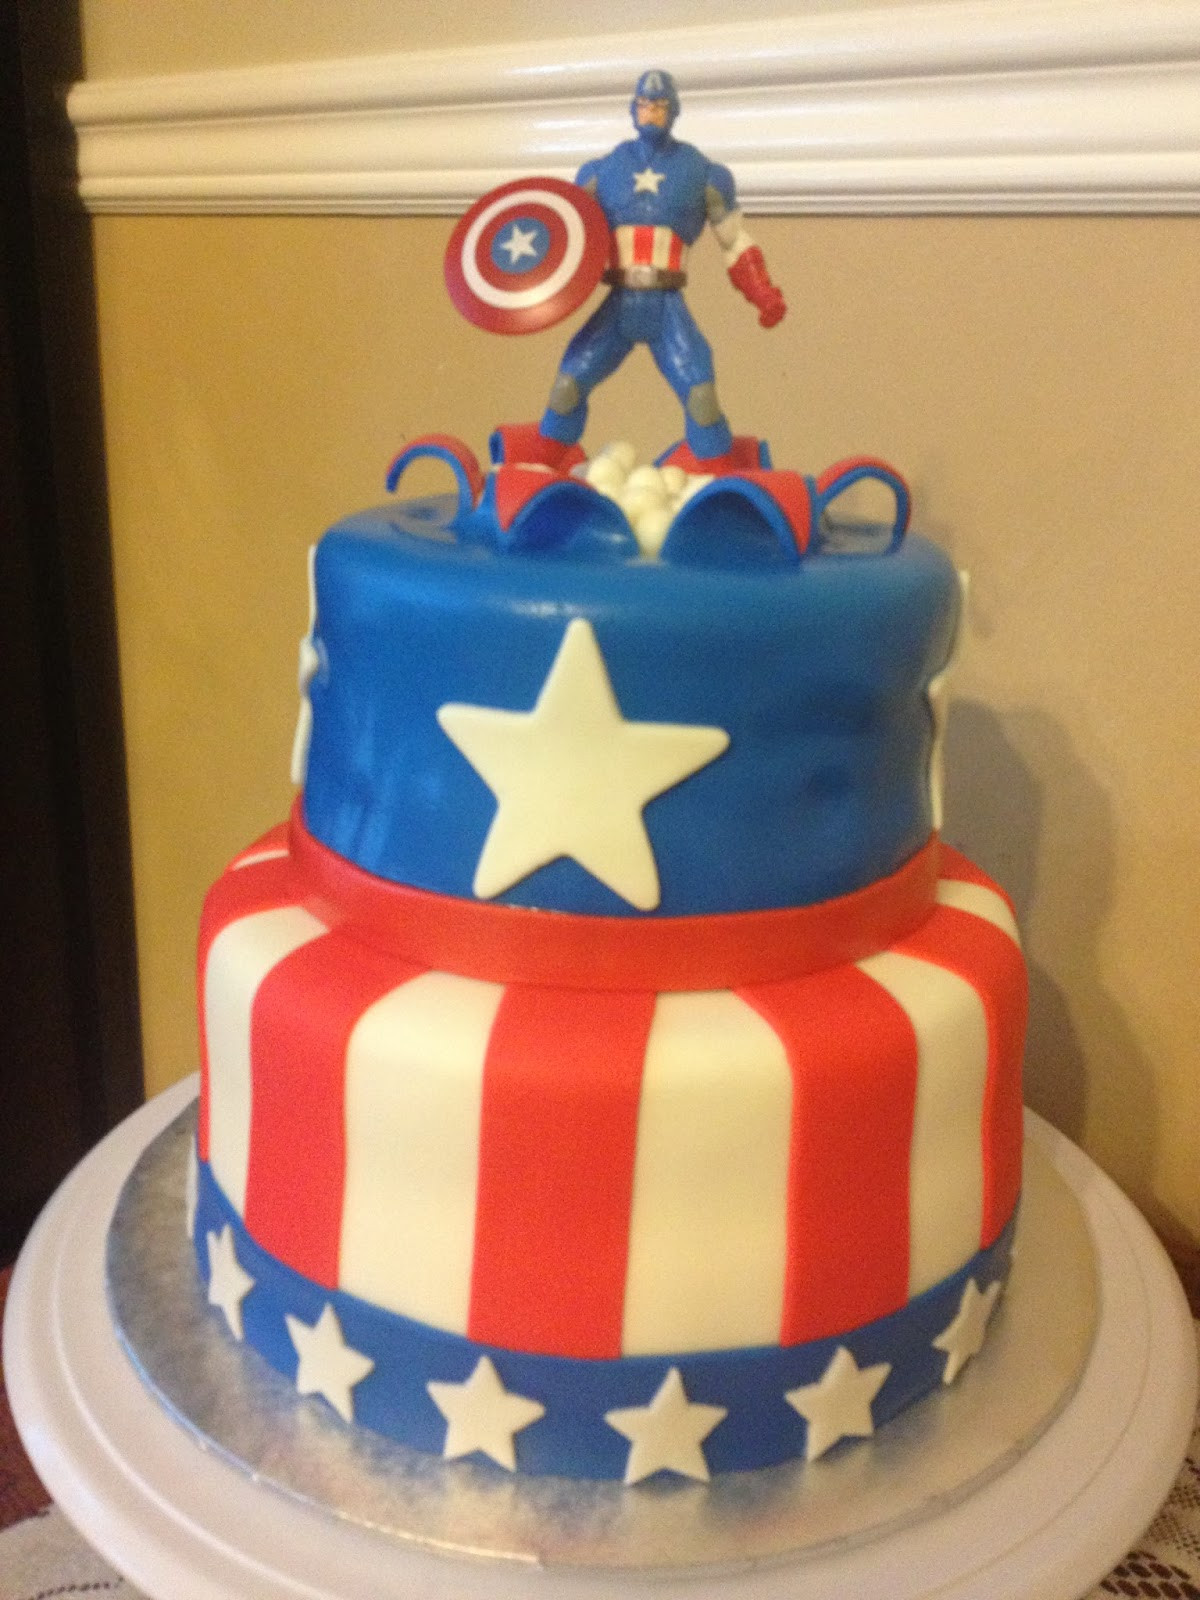 Best ideas about Captain America Birthday Cake . Save or Pin Sugar Love Cake Design Birthday Cakes Now.